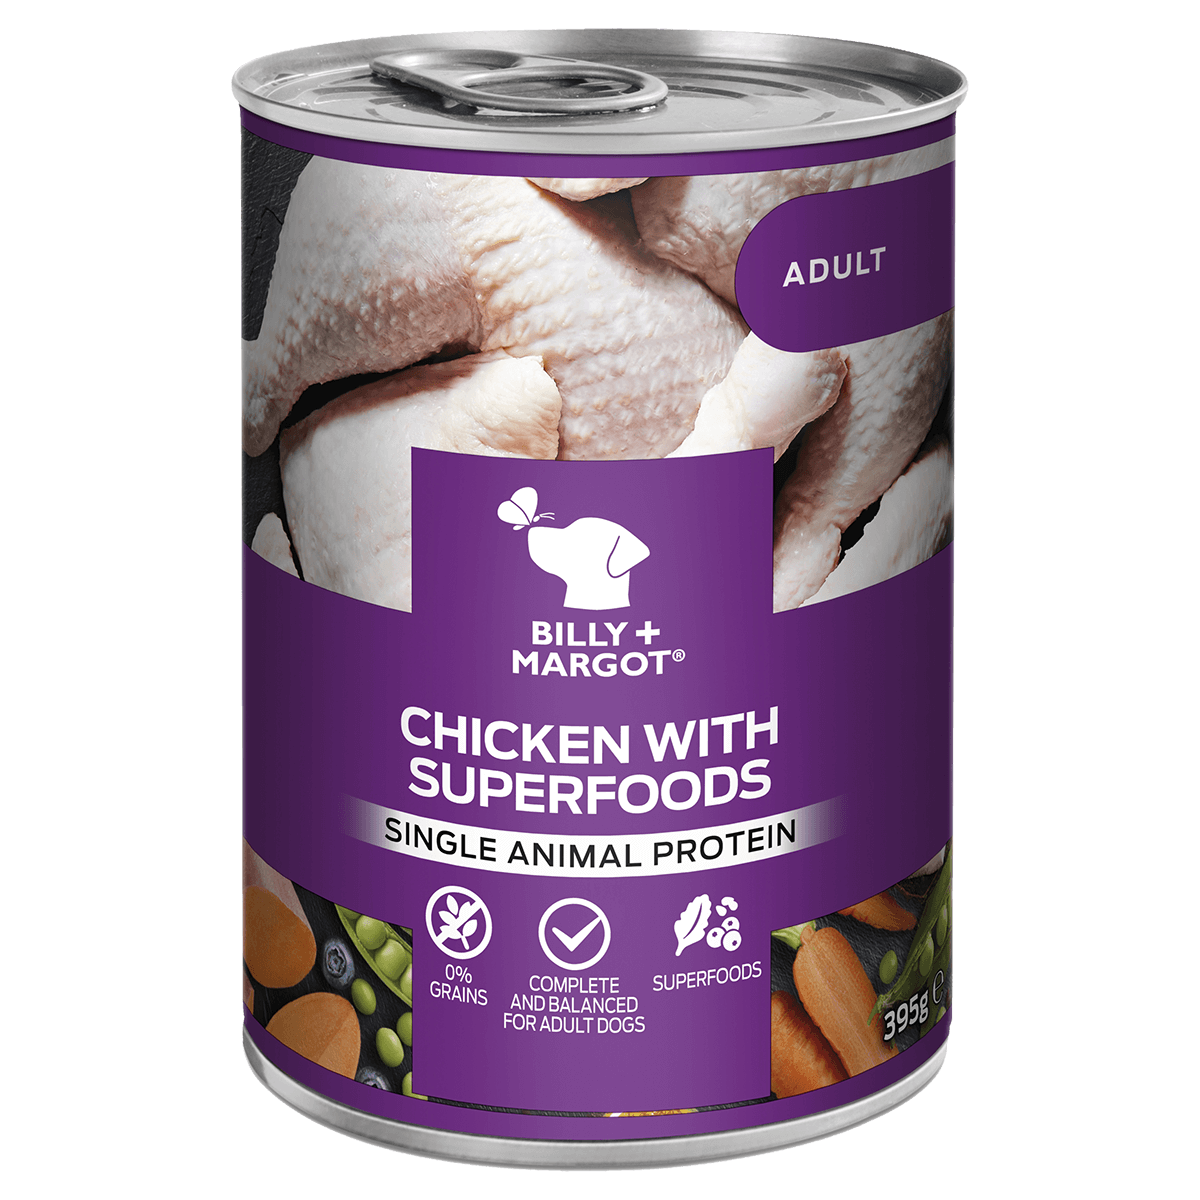 Billy & Margot - Chicken & Superfoods Wet Dog Food 395g Tins